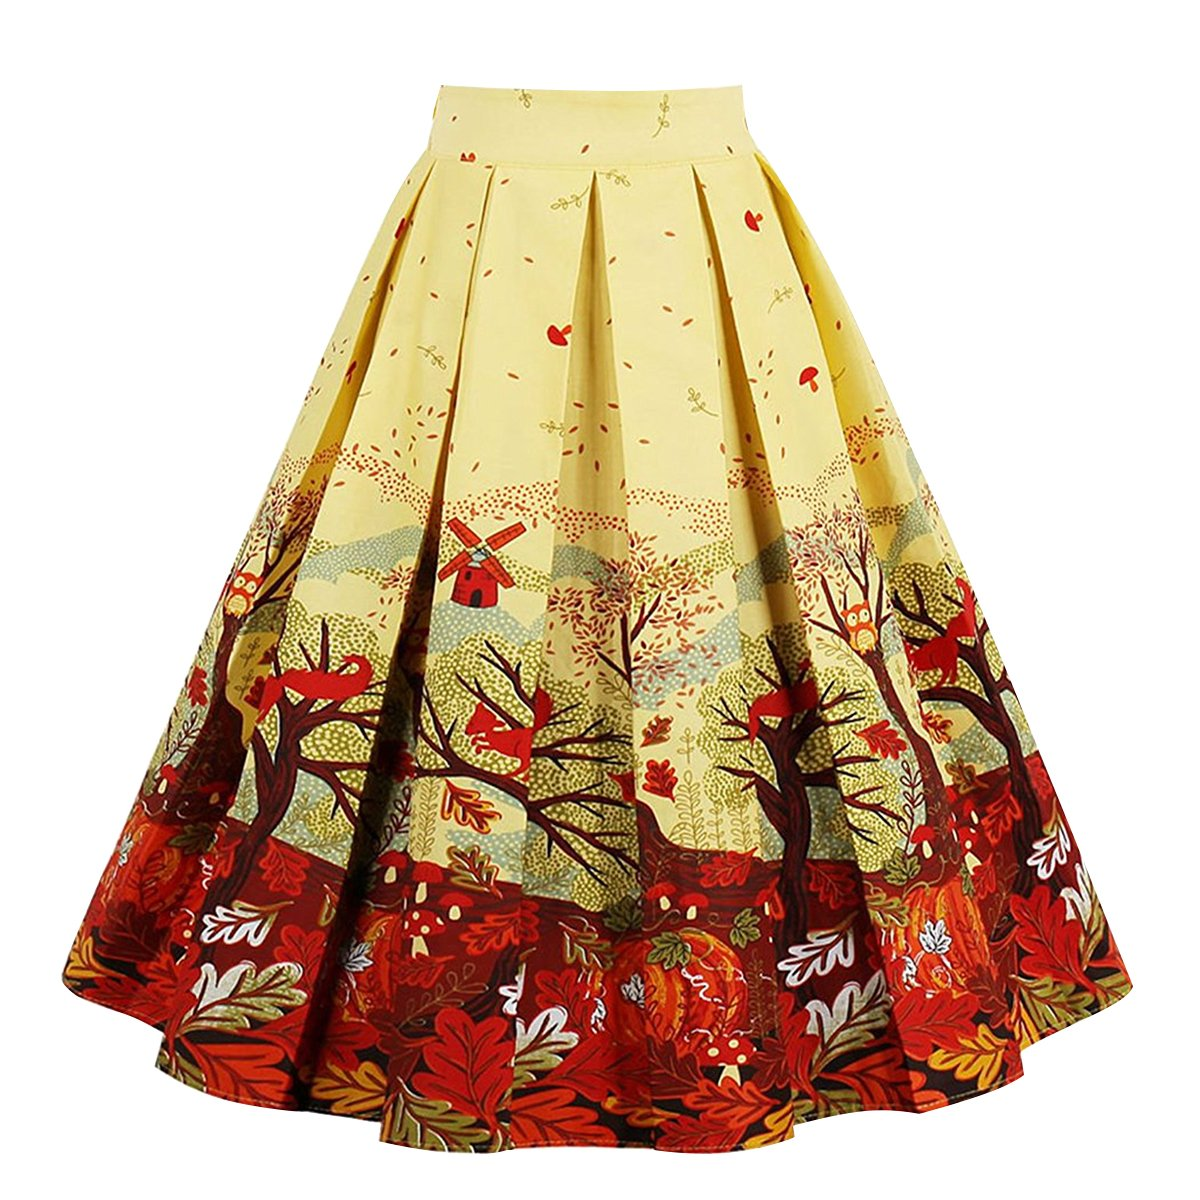 Girstunm Women's Pleated Vintage Skirt Floral Print A-line Midi Skirts with Pockets Autumn-Melody-New-L